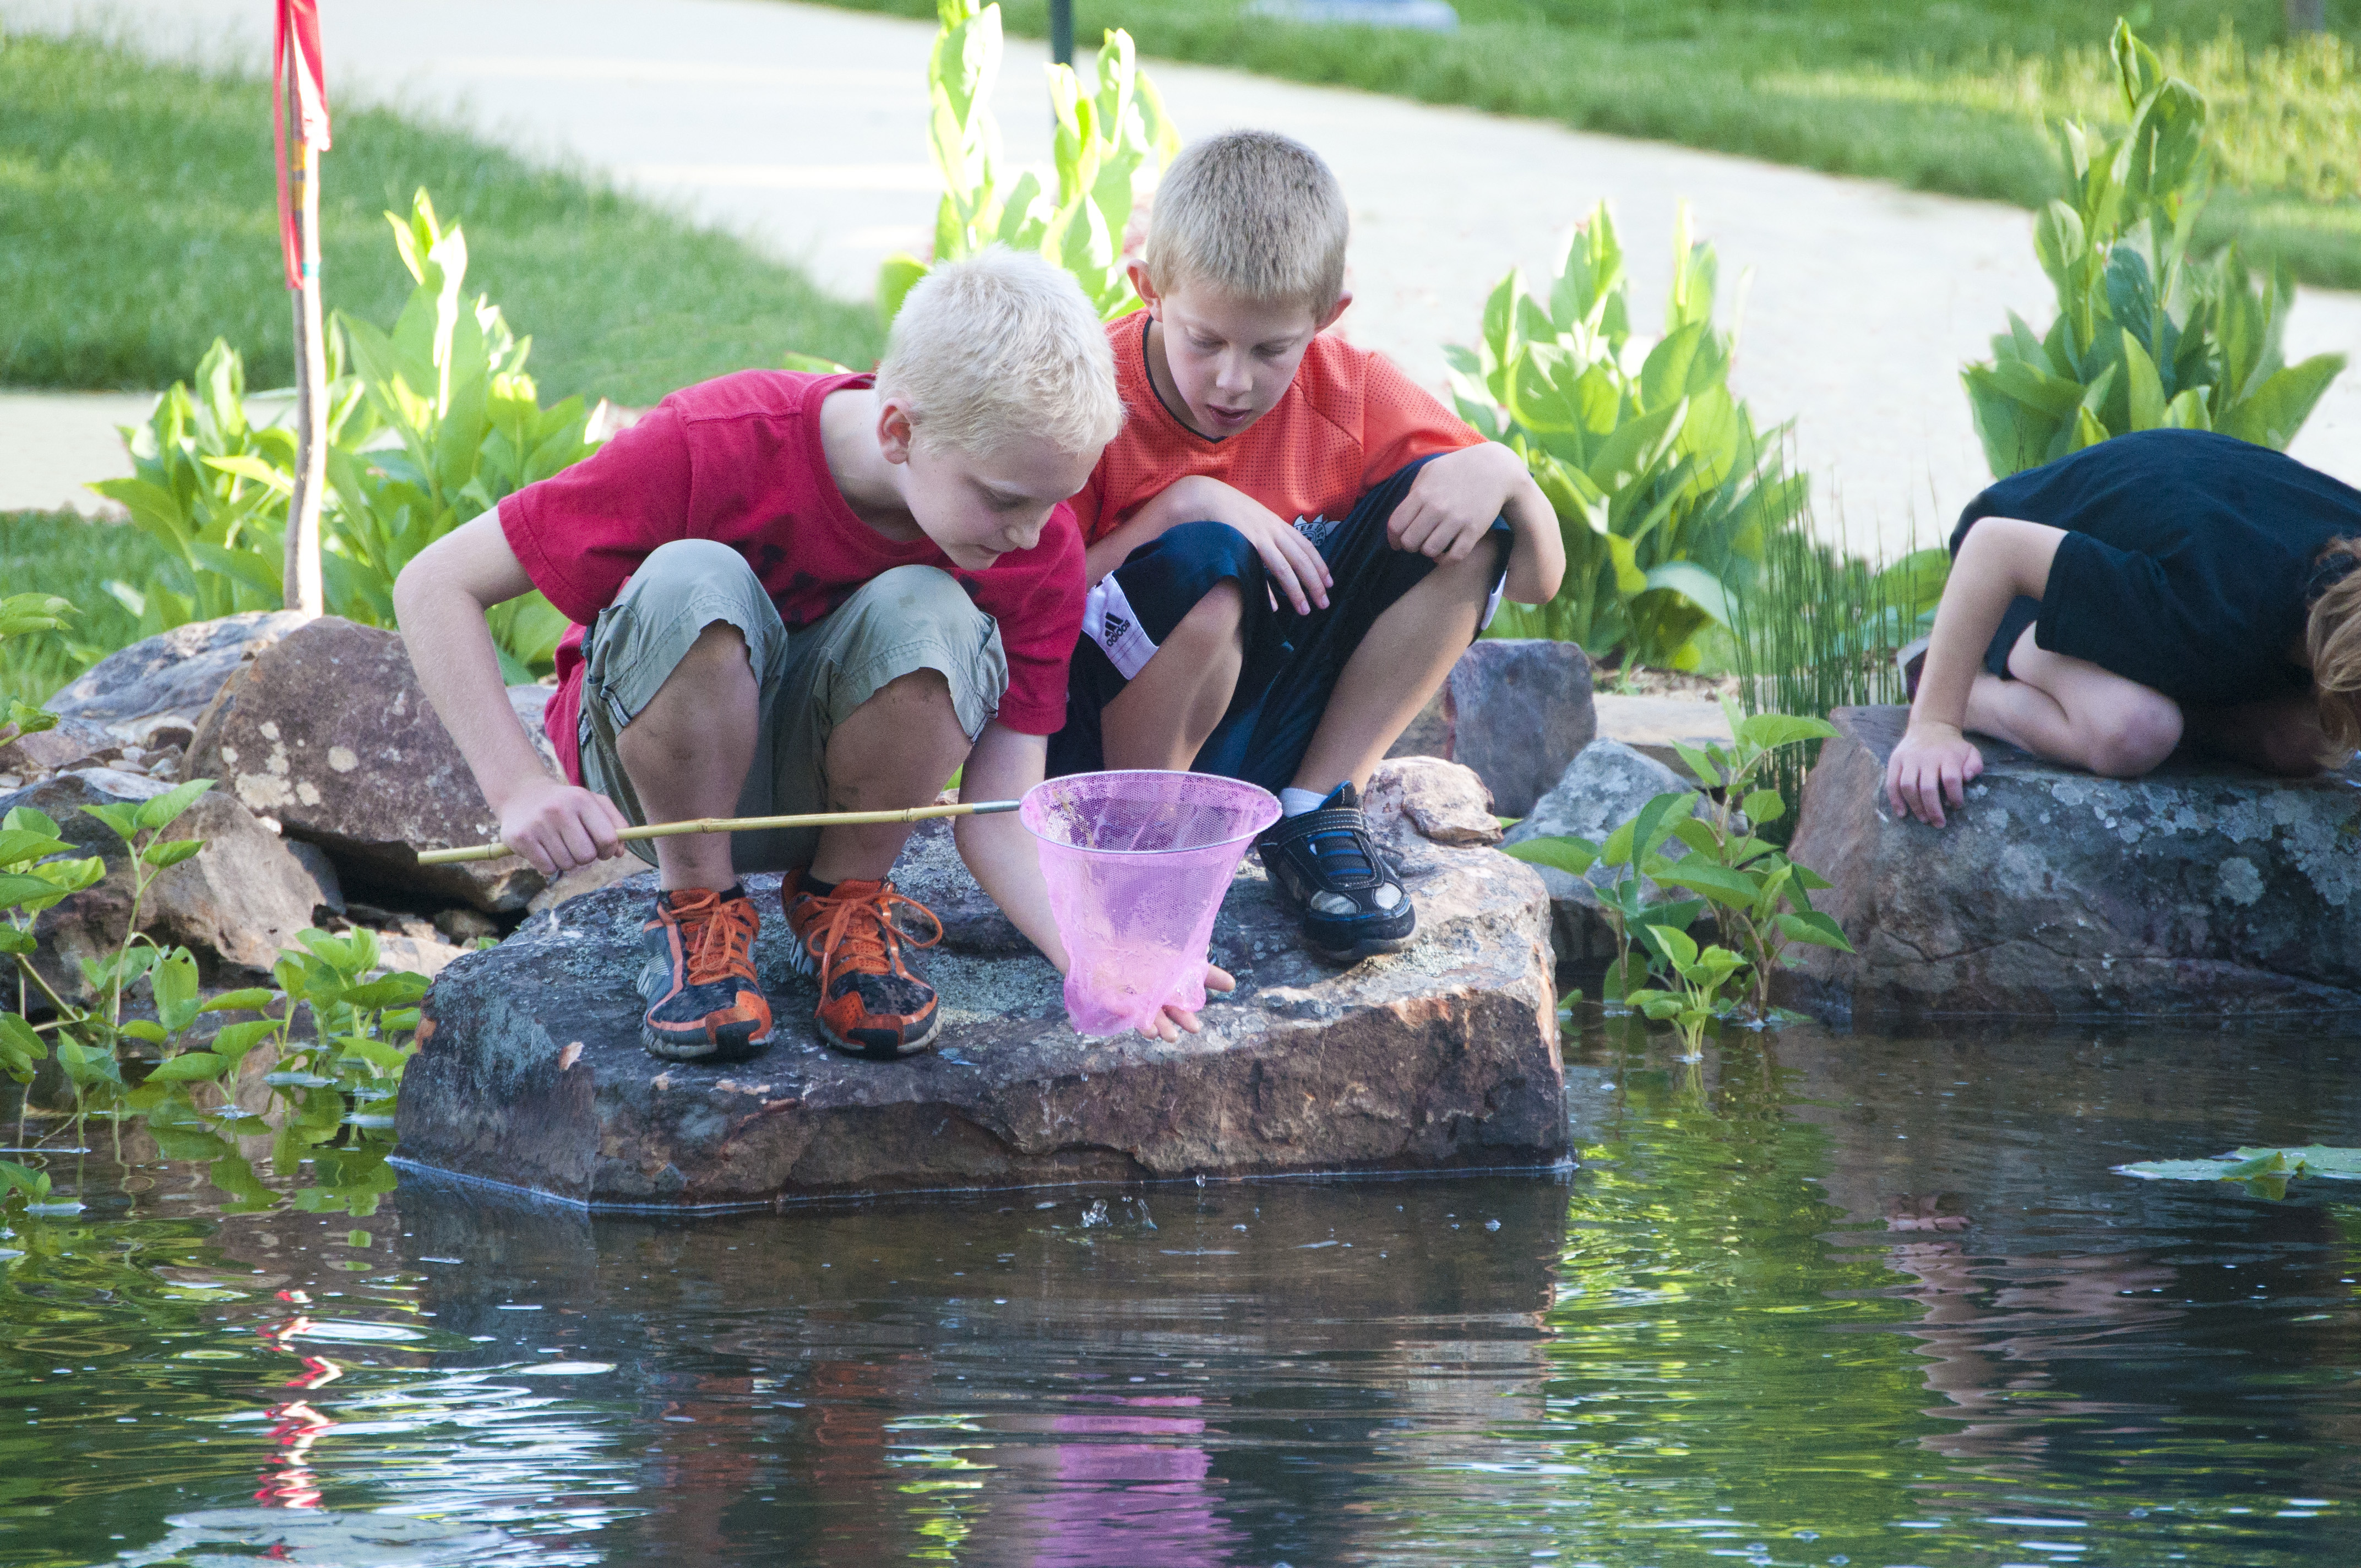 Two boys look into a net to see what they caught in the pond